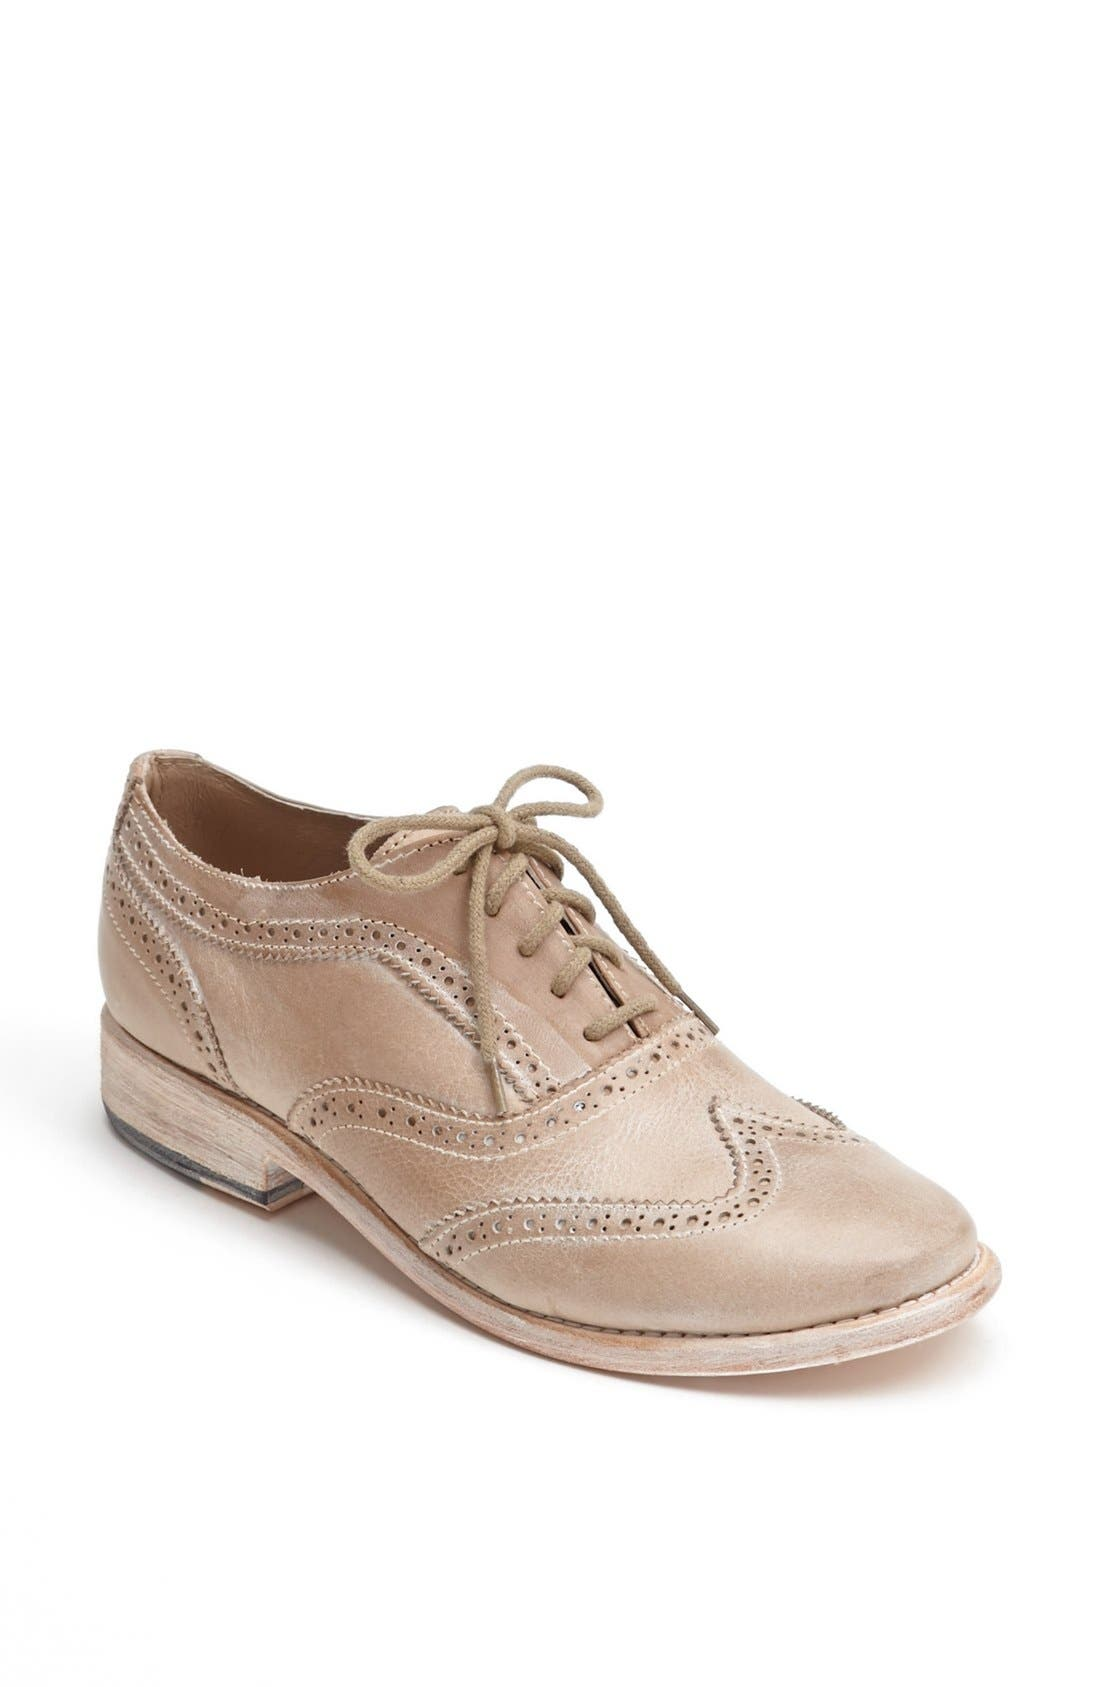 Main Image - Steve Madden 'Repete' Wingtip Oxford